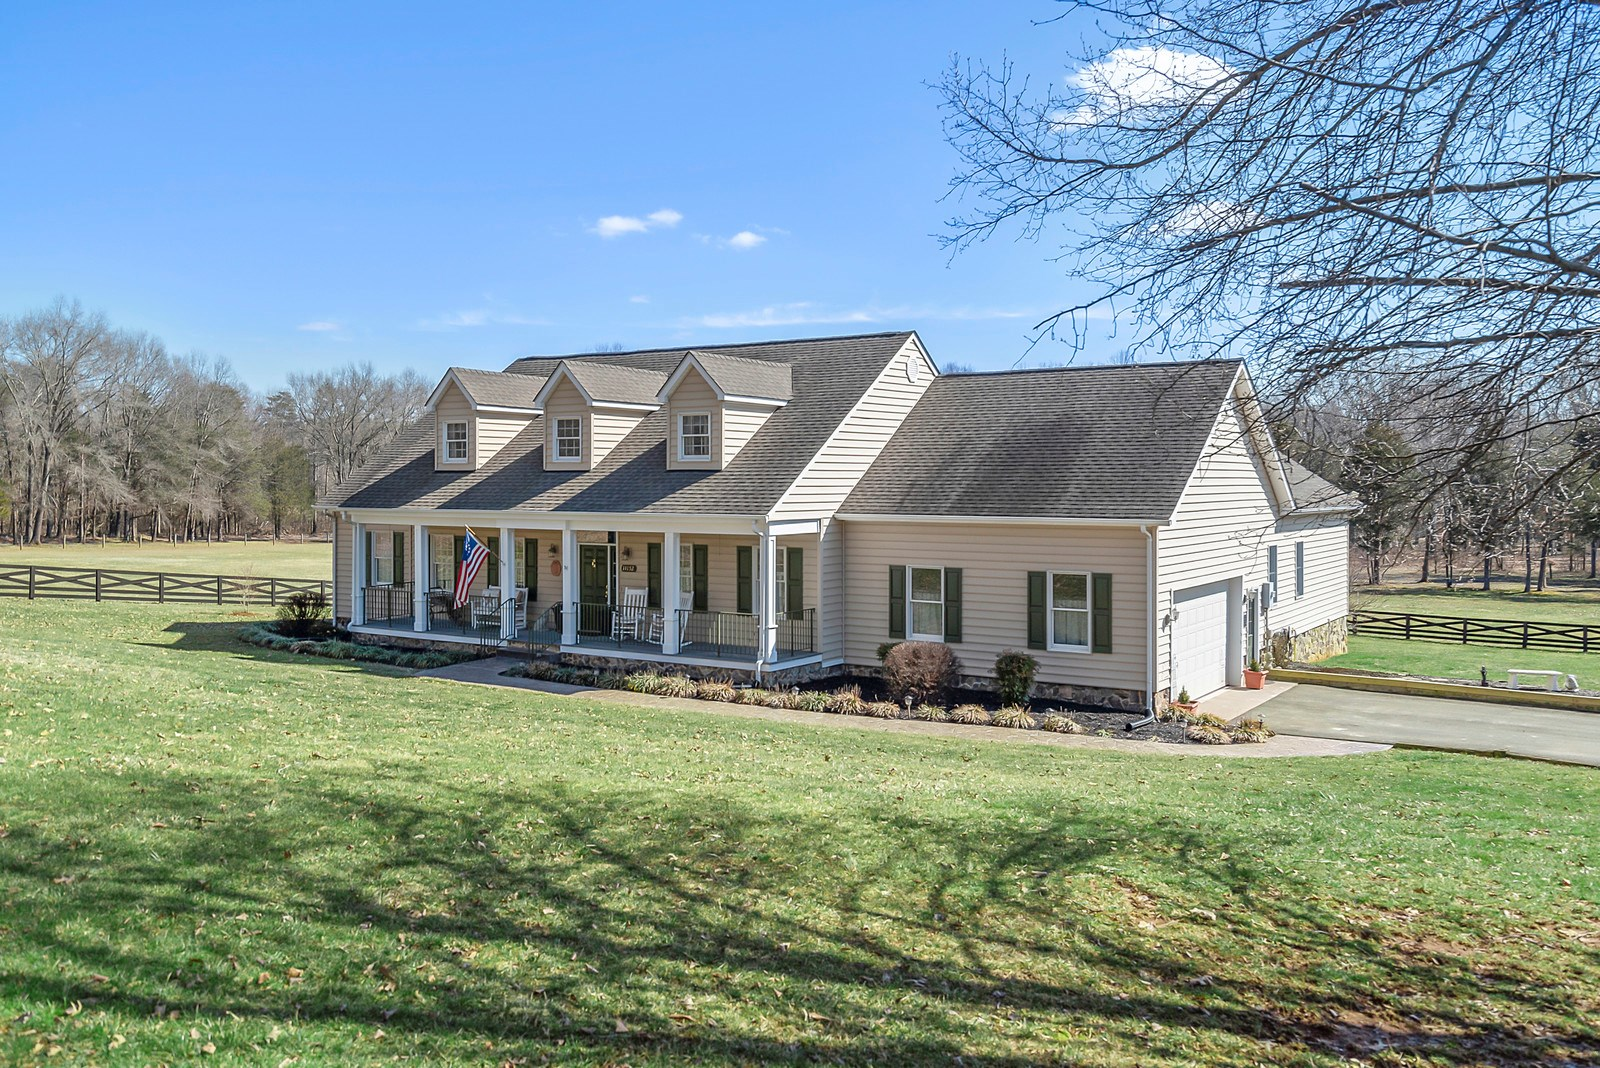 Luxury Horse Farm For Sale in Fauquier Co, VA